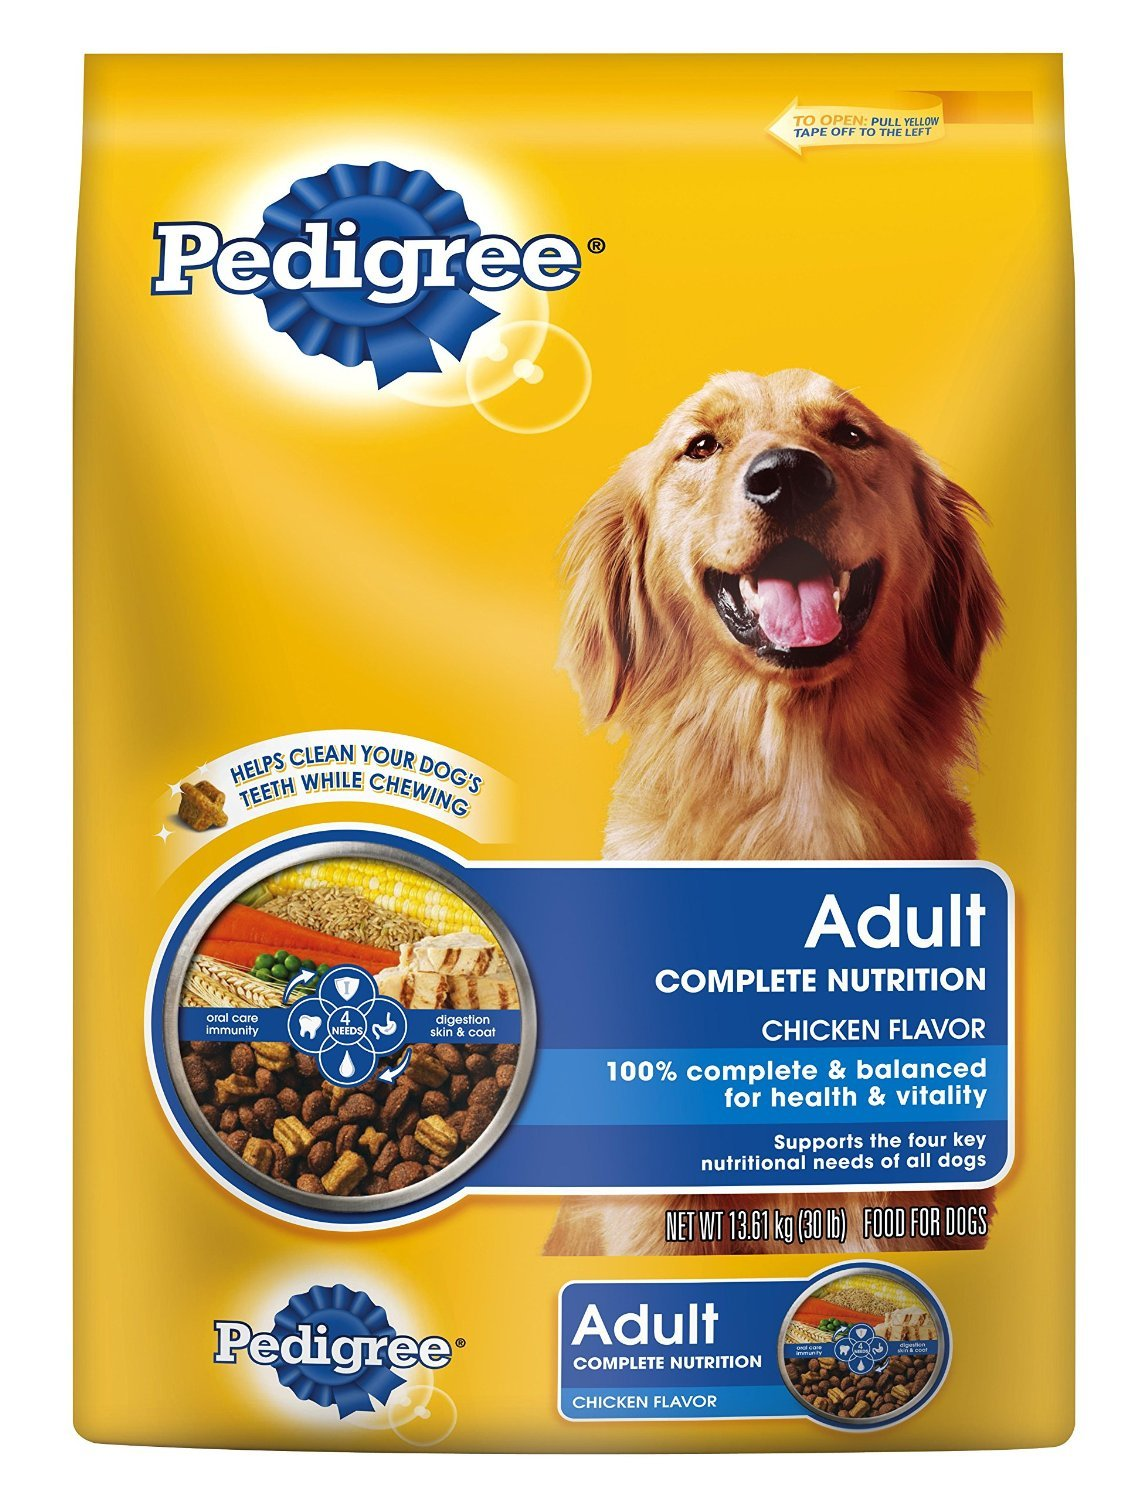 Pet Pride Dog Food